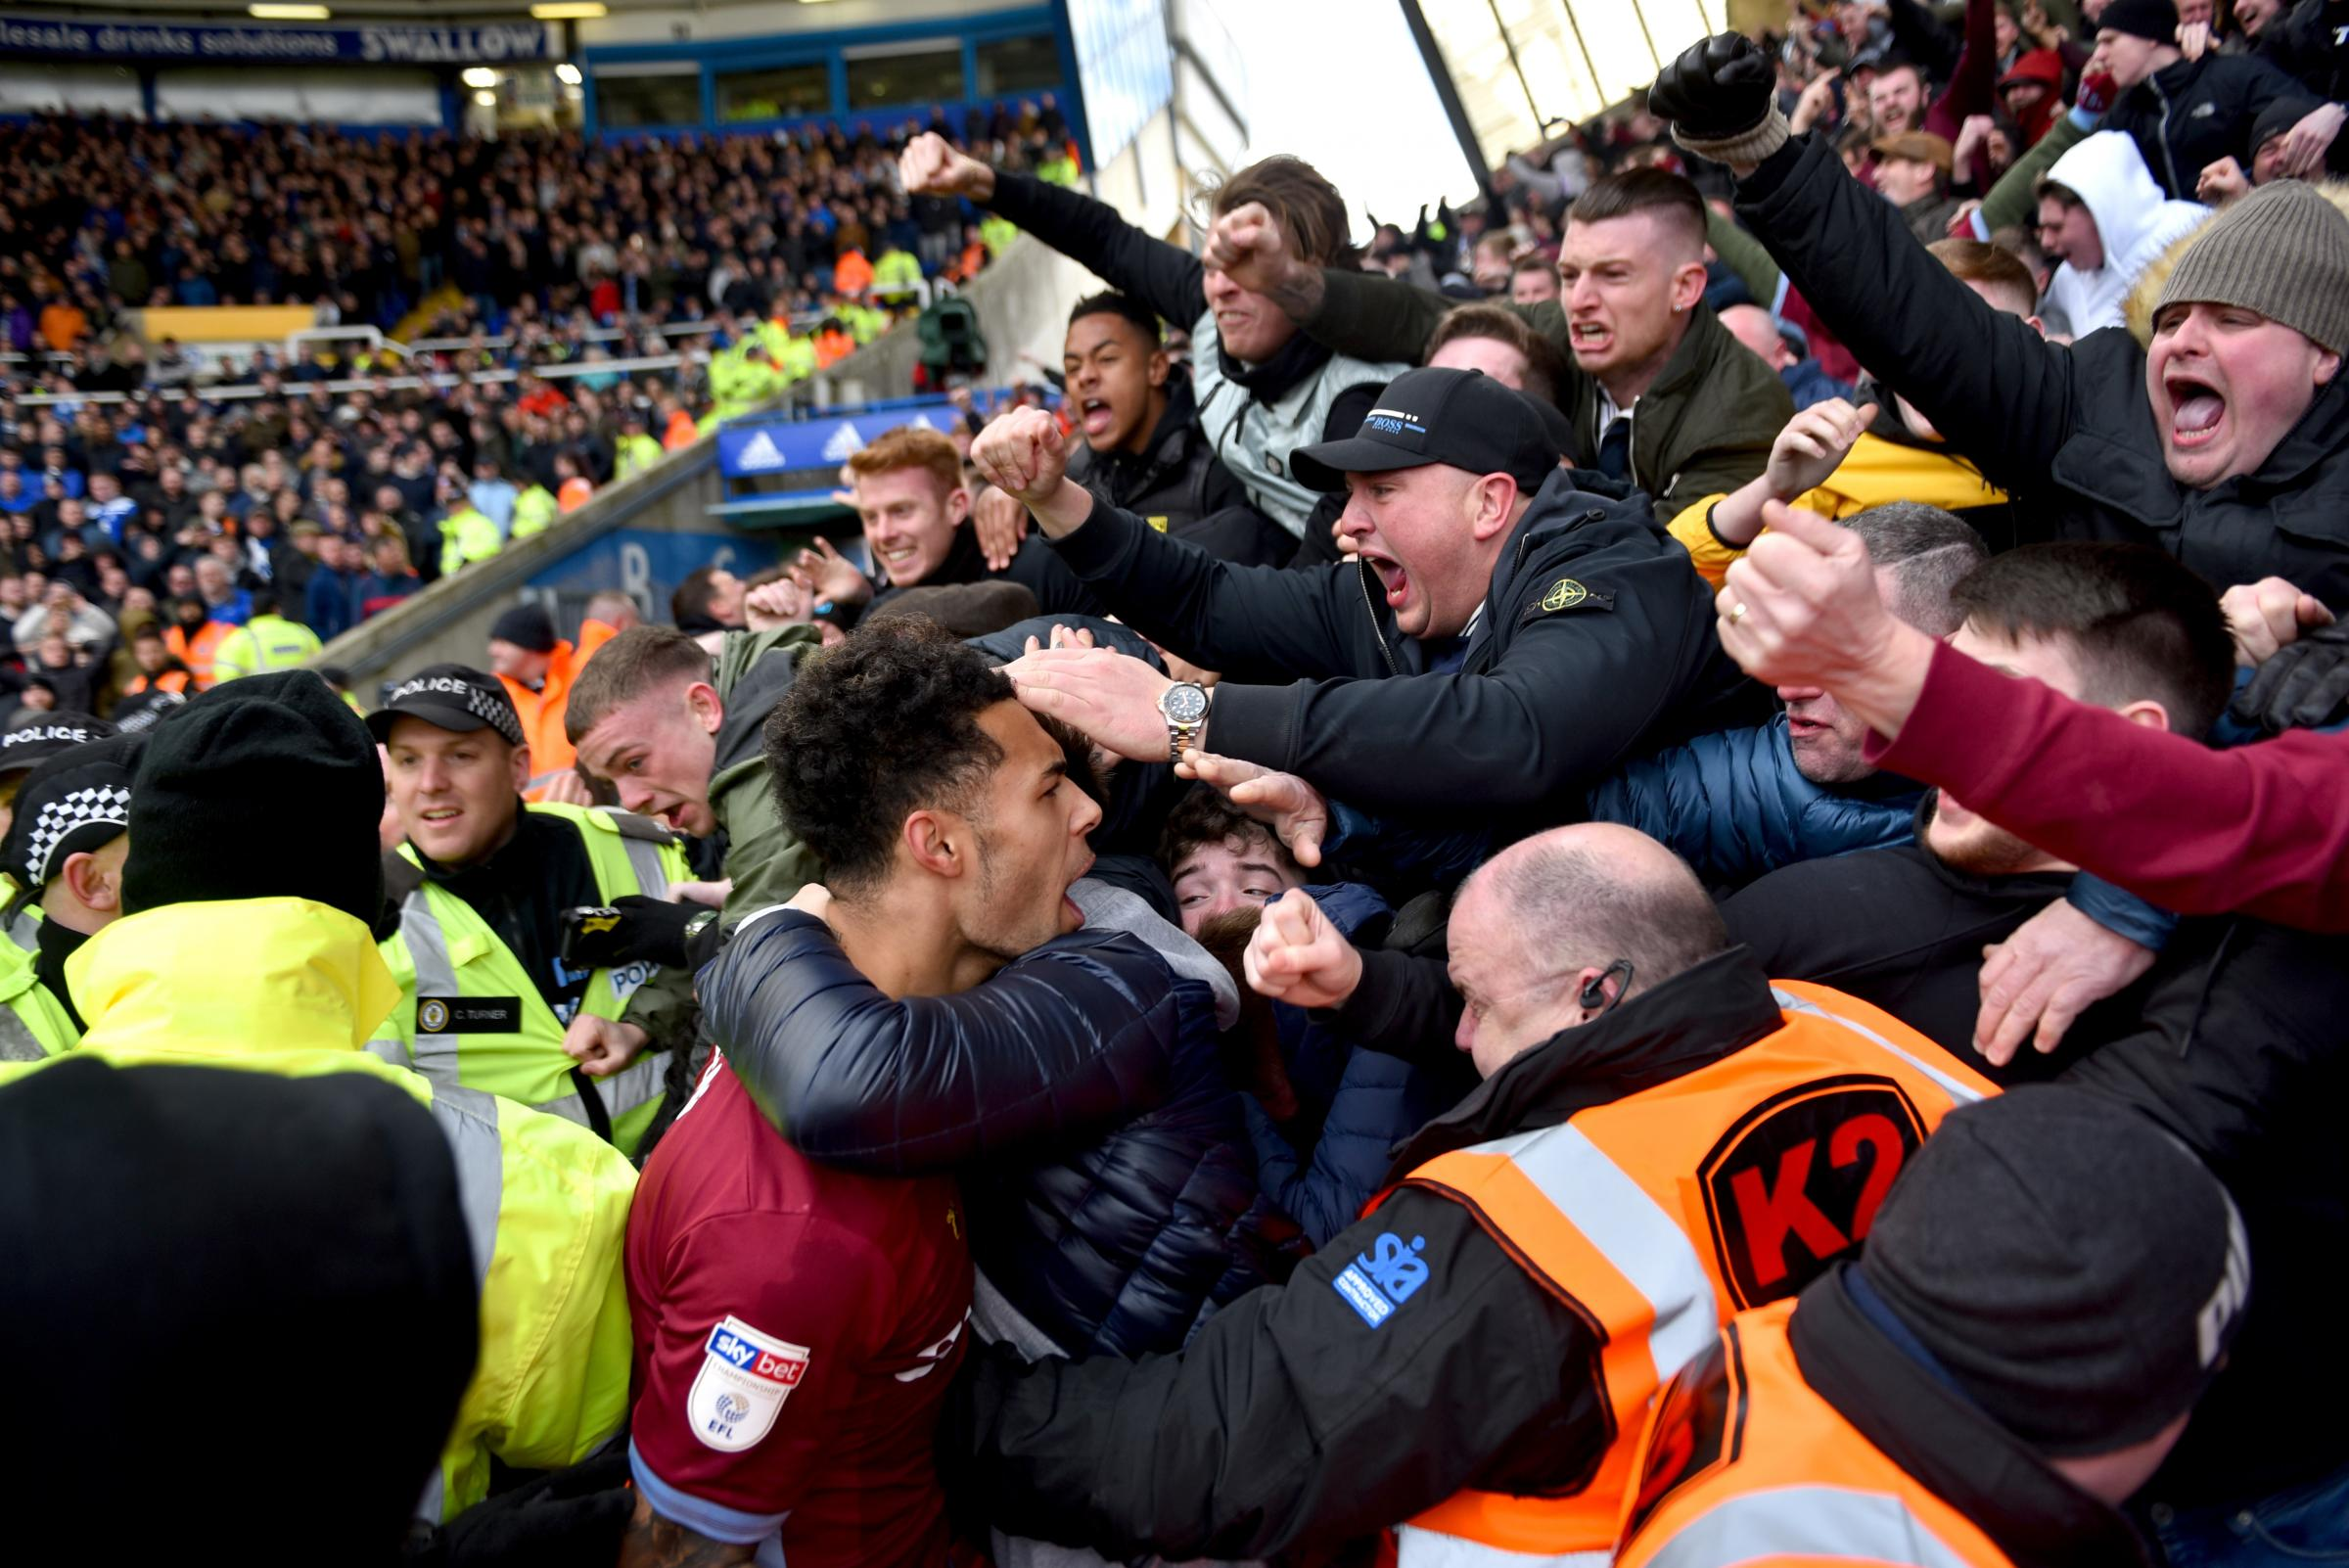 Aston Villa's celebrations against Birmingham on Sunday